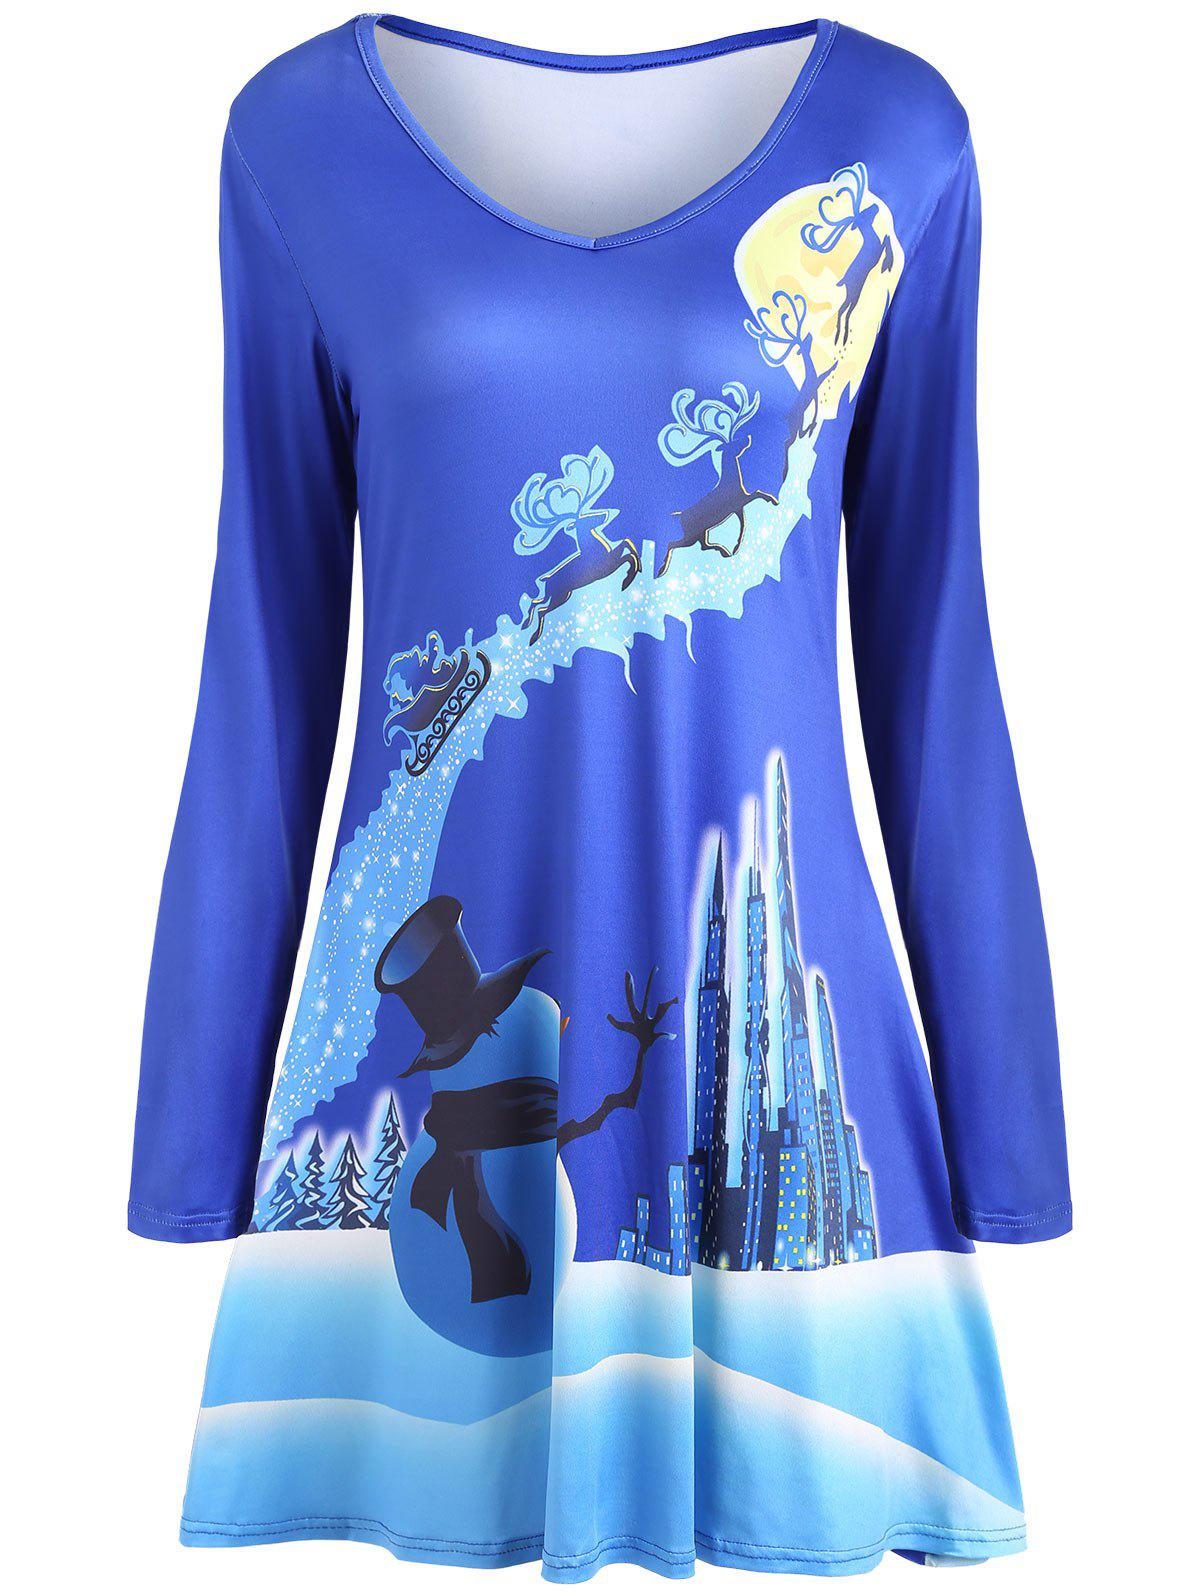 Christmas Long Sleeve Printed Mini Skater DressWOMEN<br><br>Size: S; Color: BLUE; Style: Casual; Material: Polyester; Silhouette: A-Line; Dresses Length: Mini; Neckline: V-Neck; Sleeve Length: Long Sleeves; Pattern Type: Print; With Belt: No; Season: Fall,Spring; Weight: 0.3500kg; Package Contents: 1 x Dress; Occasion: Casual;